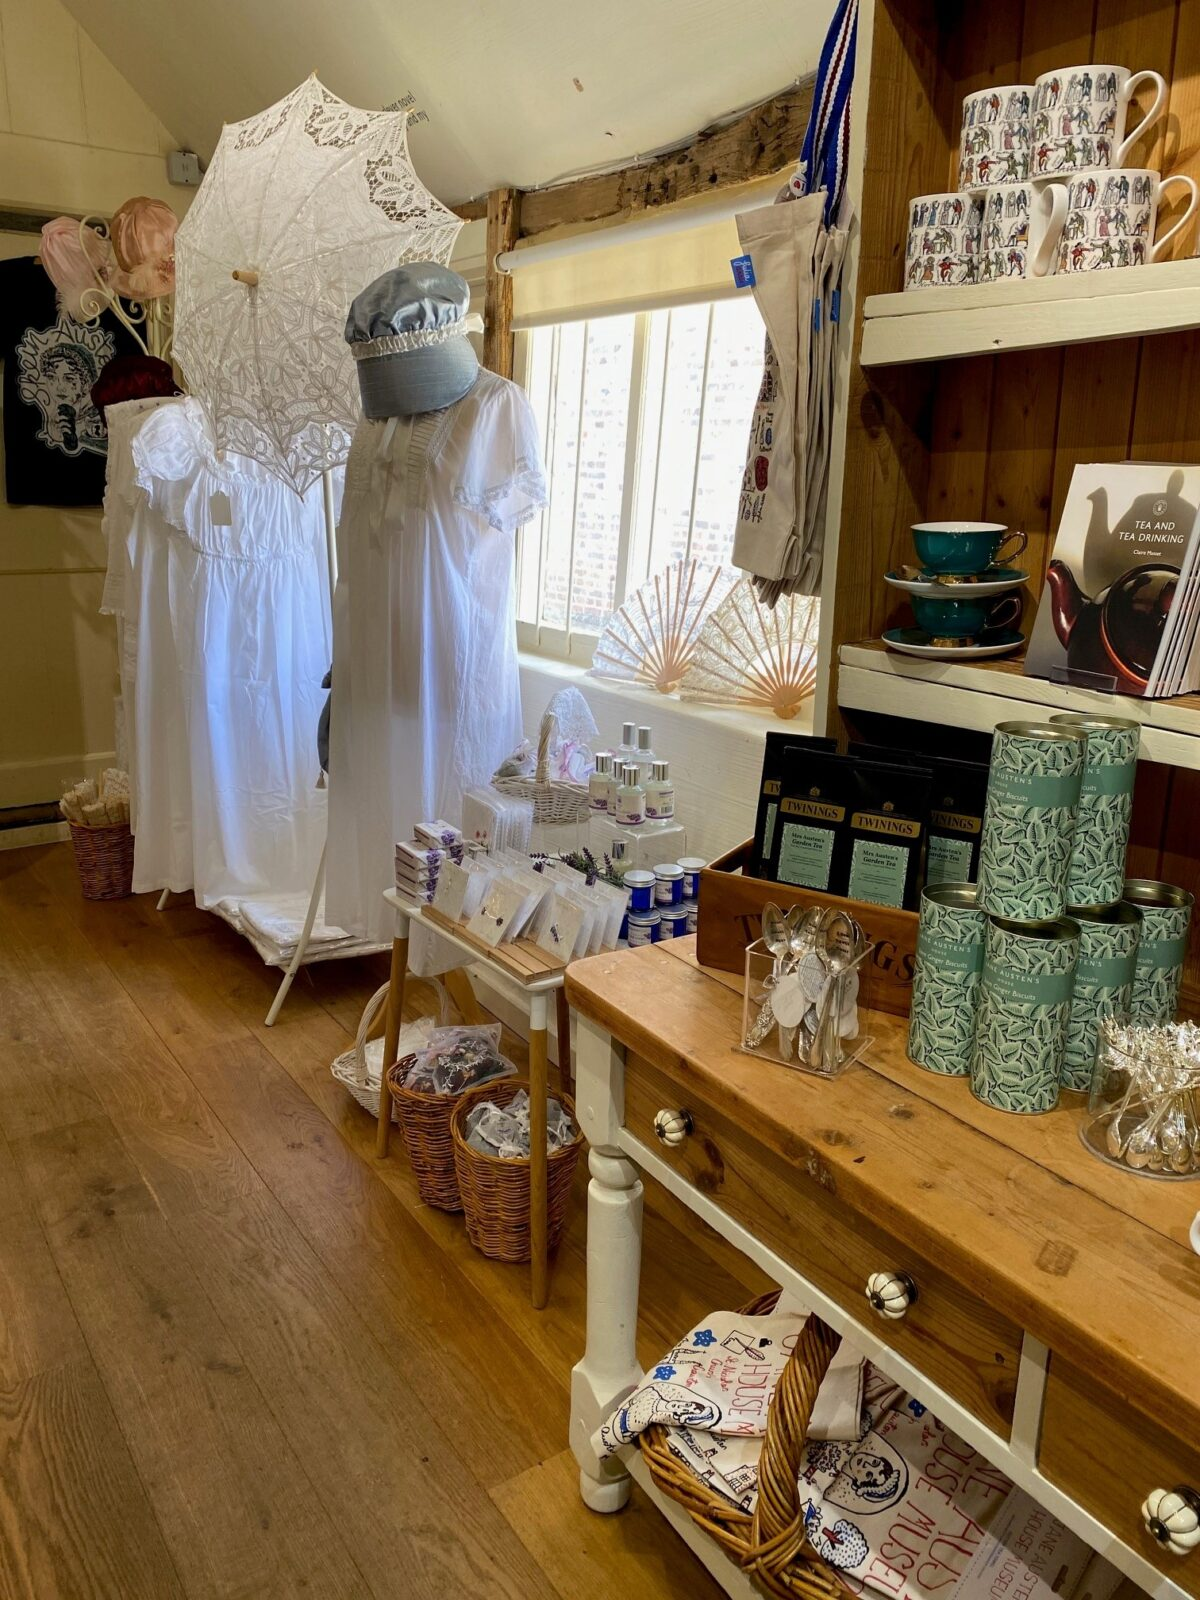 The Gift Shop at Jane Austen's House